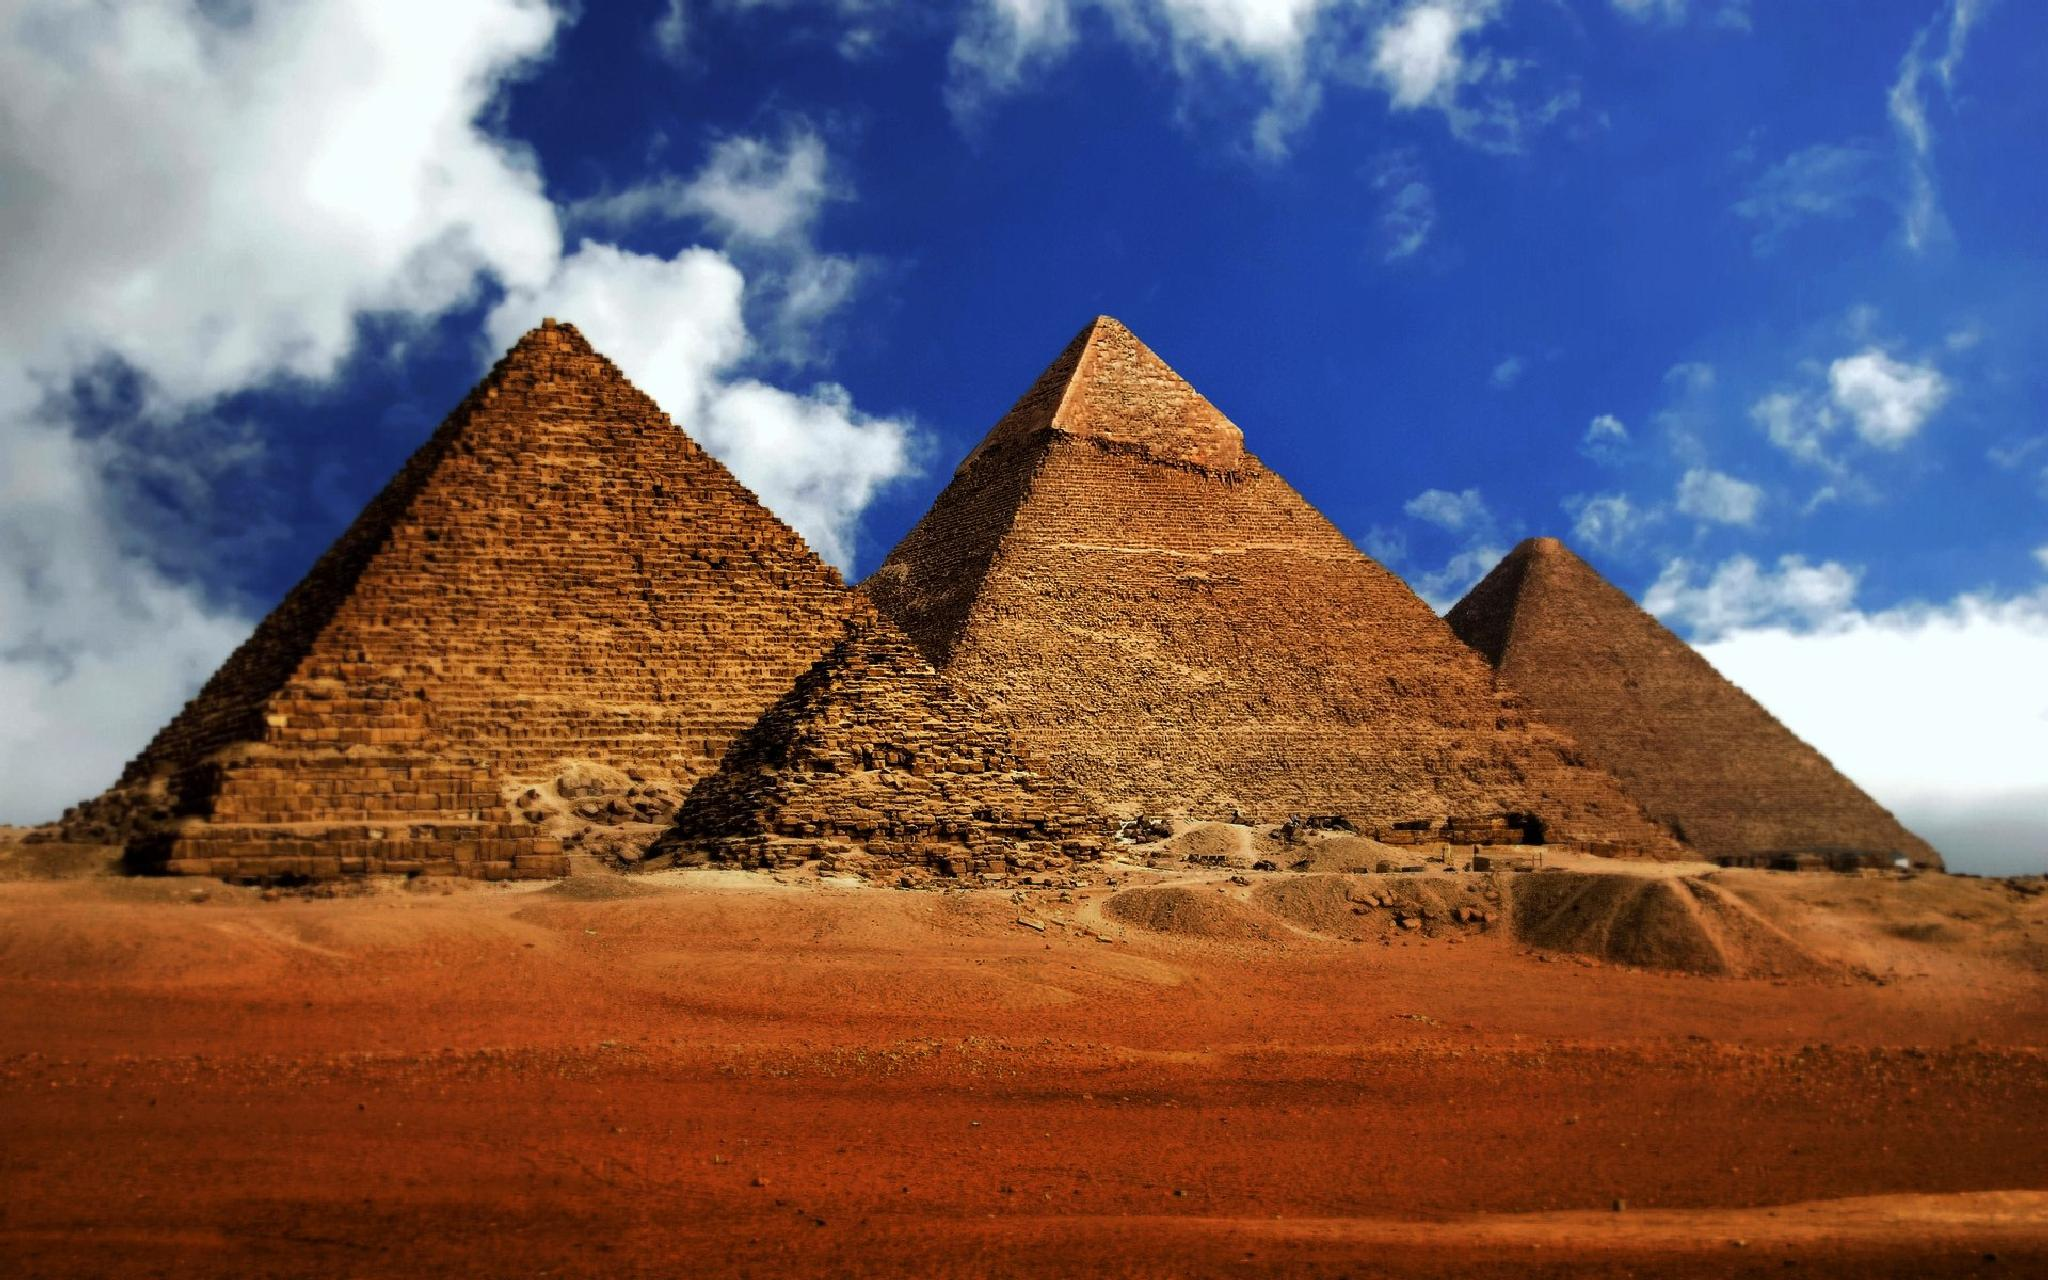 The Pyramids of Giza by ChristopherMorrison